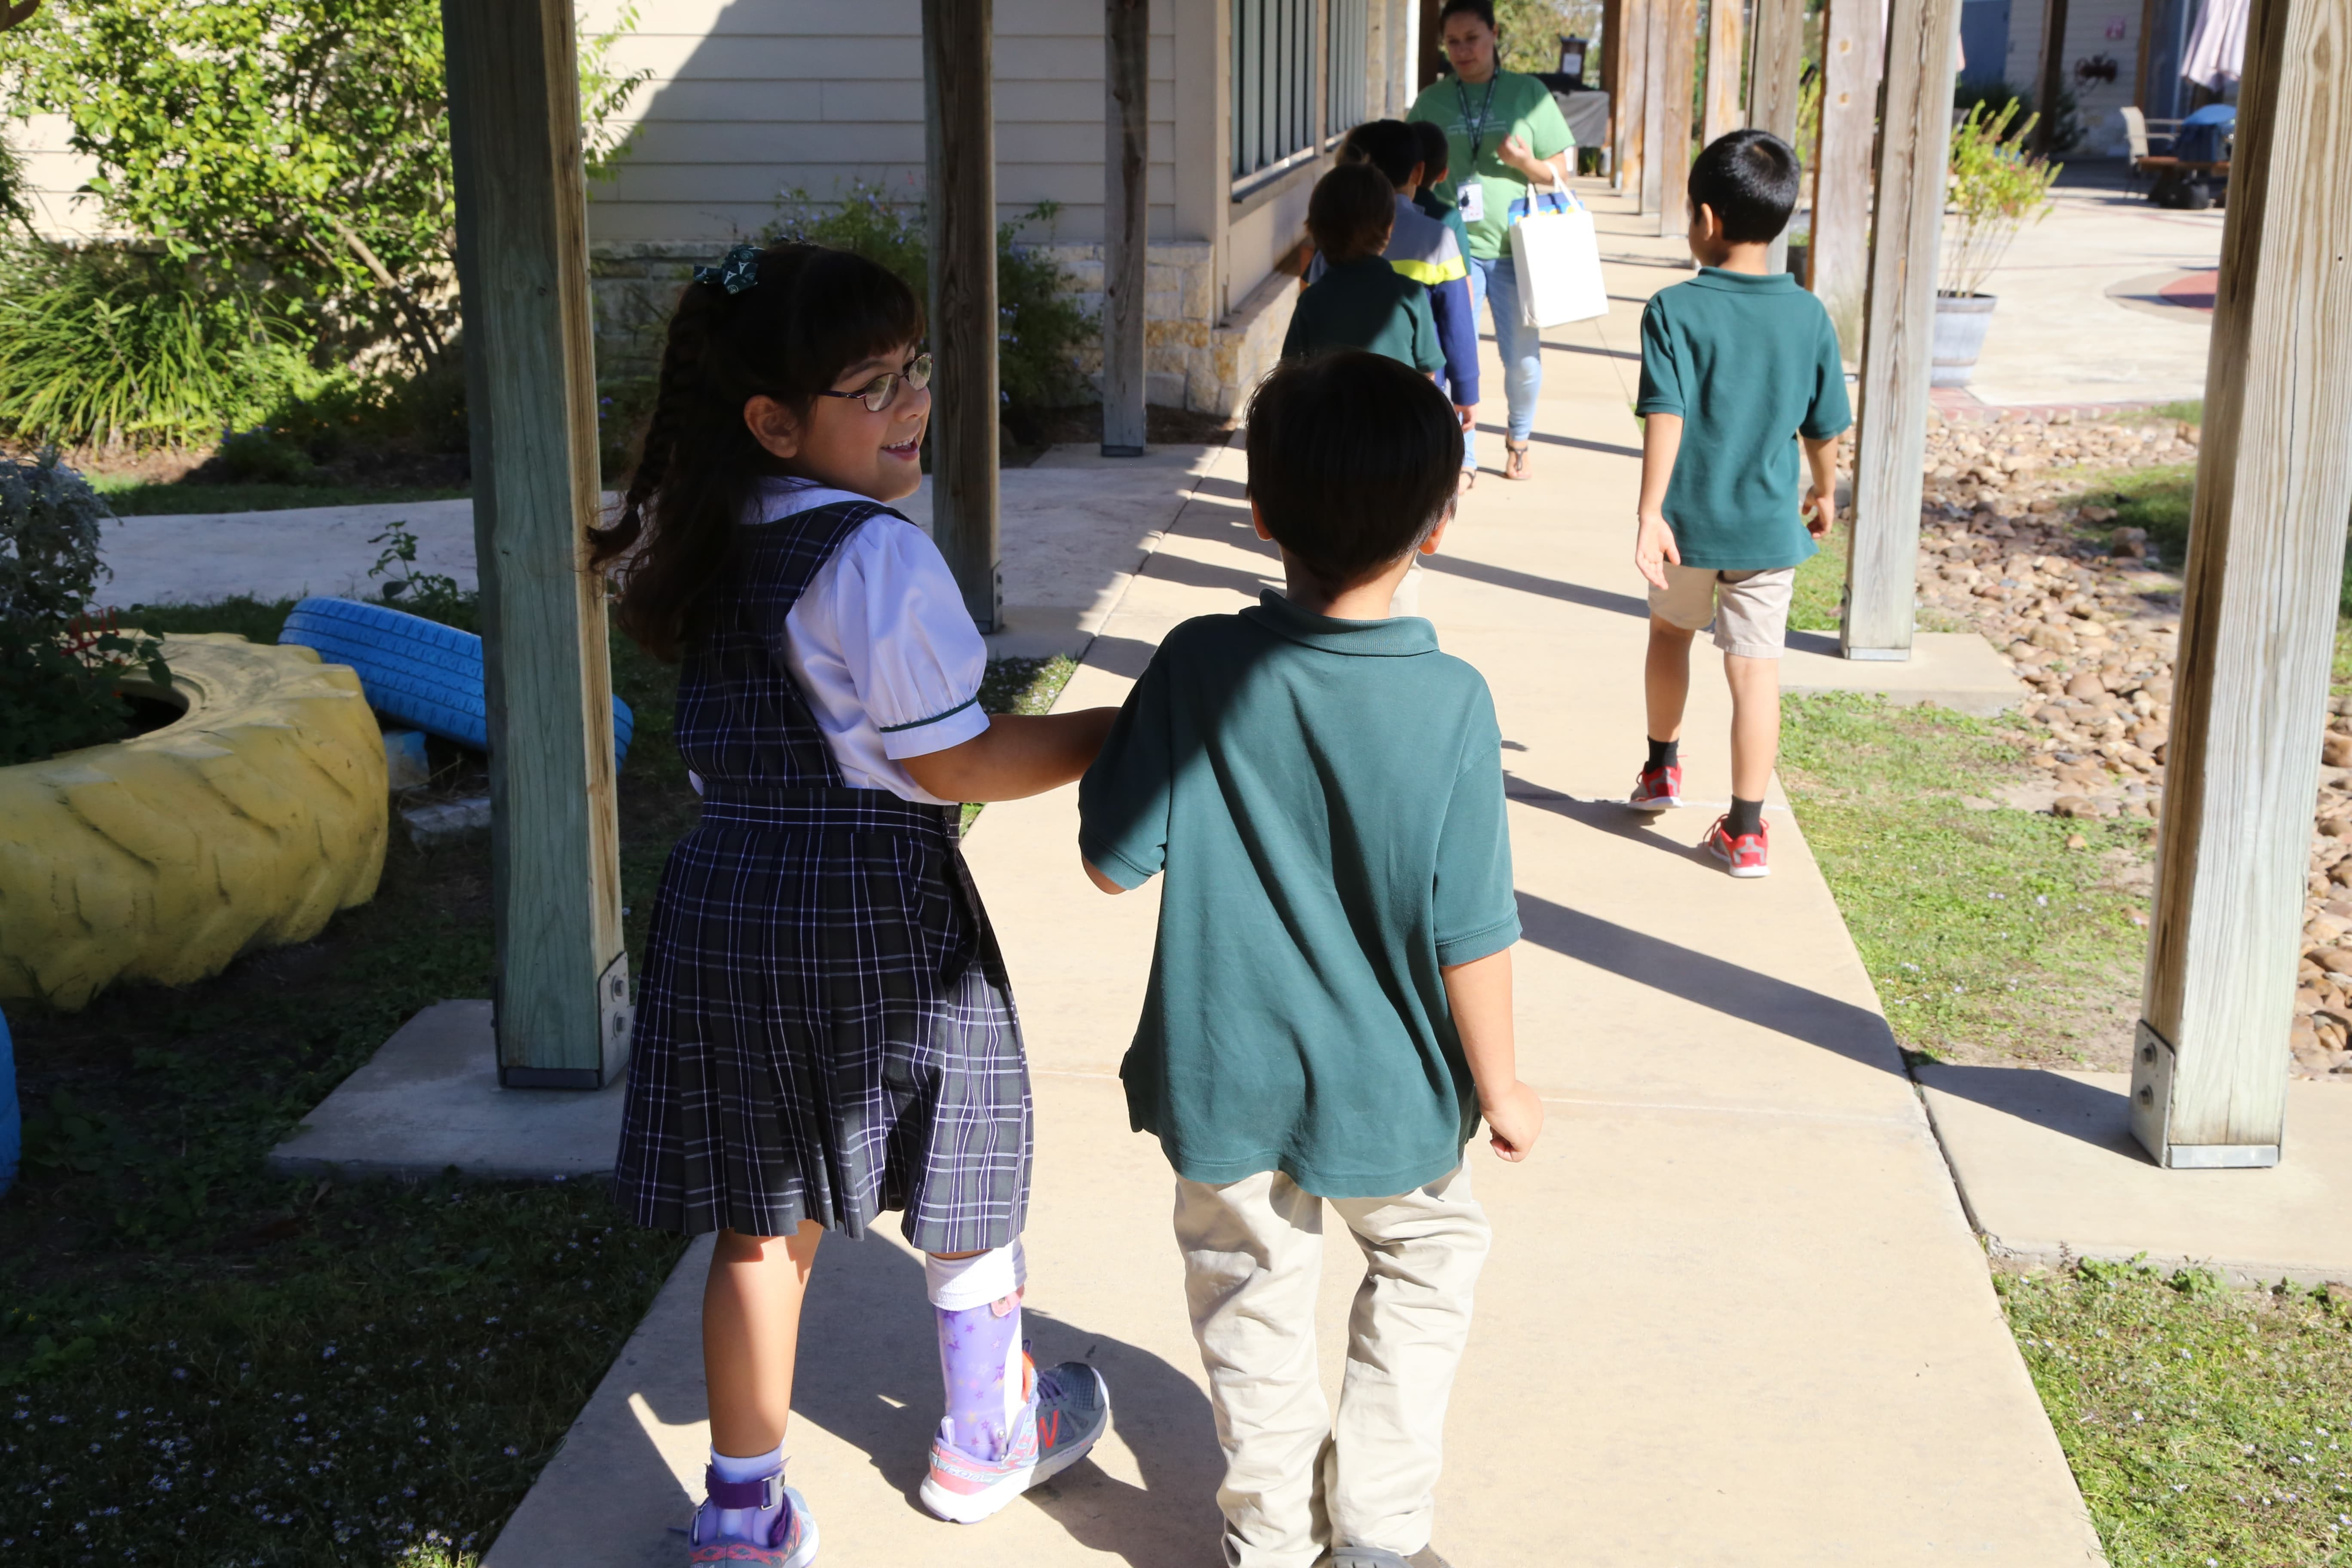 Students at The Parish School walk down the sidewalk holding hands